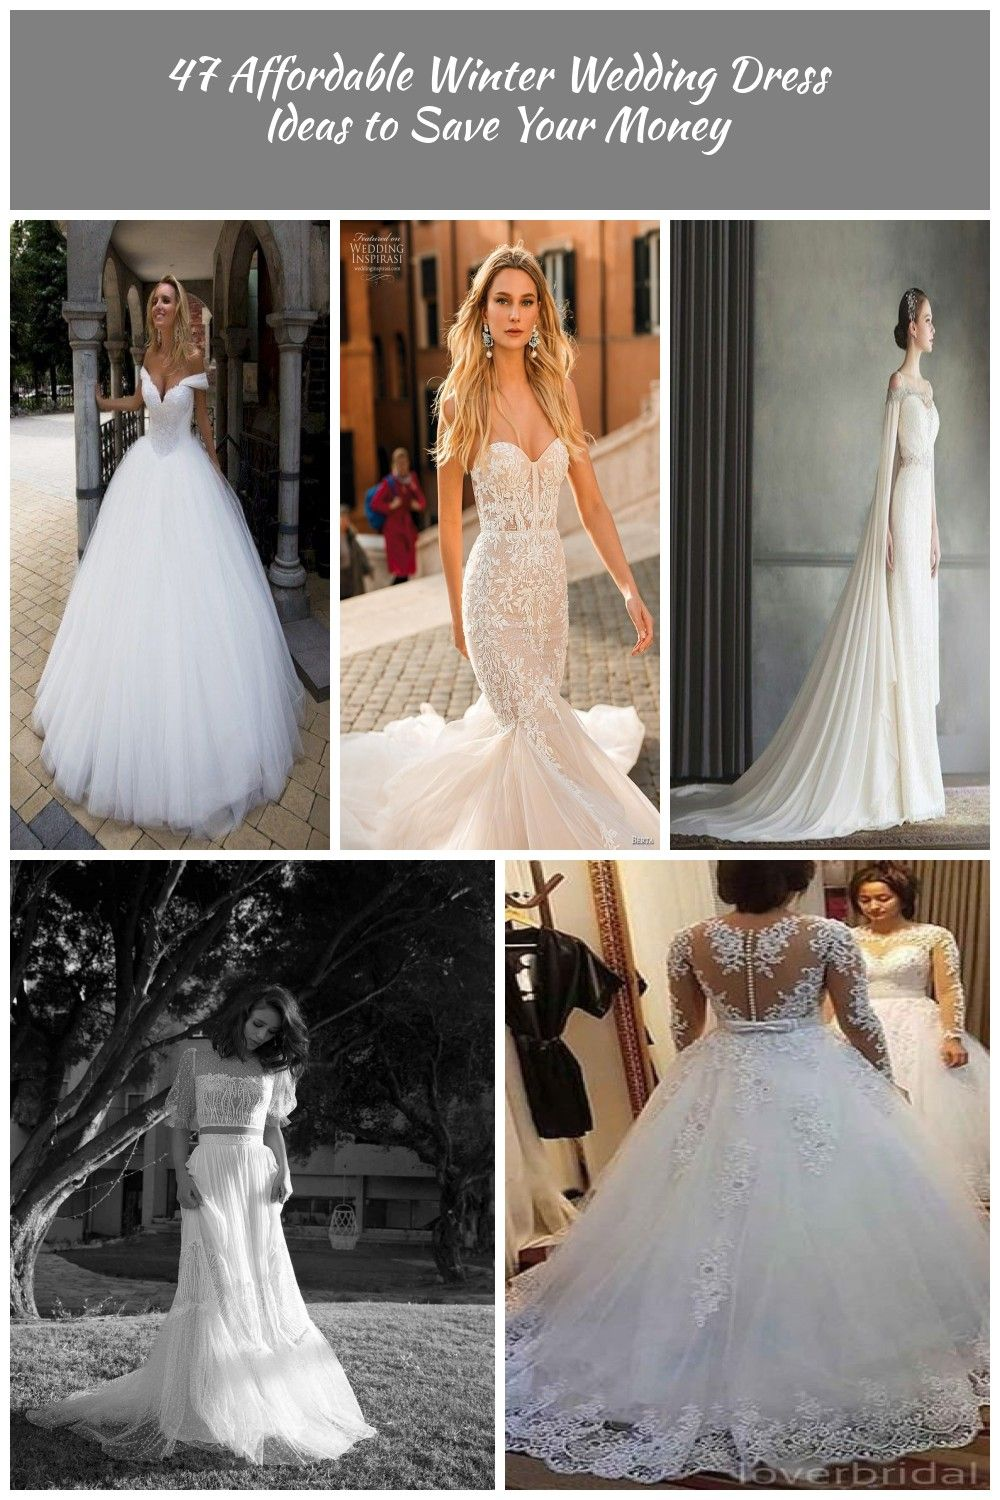 Affordable winter wedding dress ideas to save your money 11